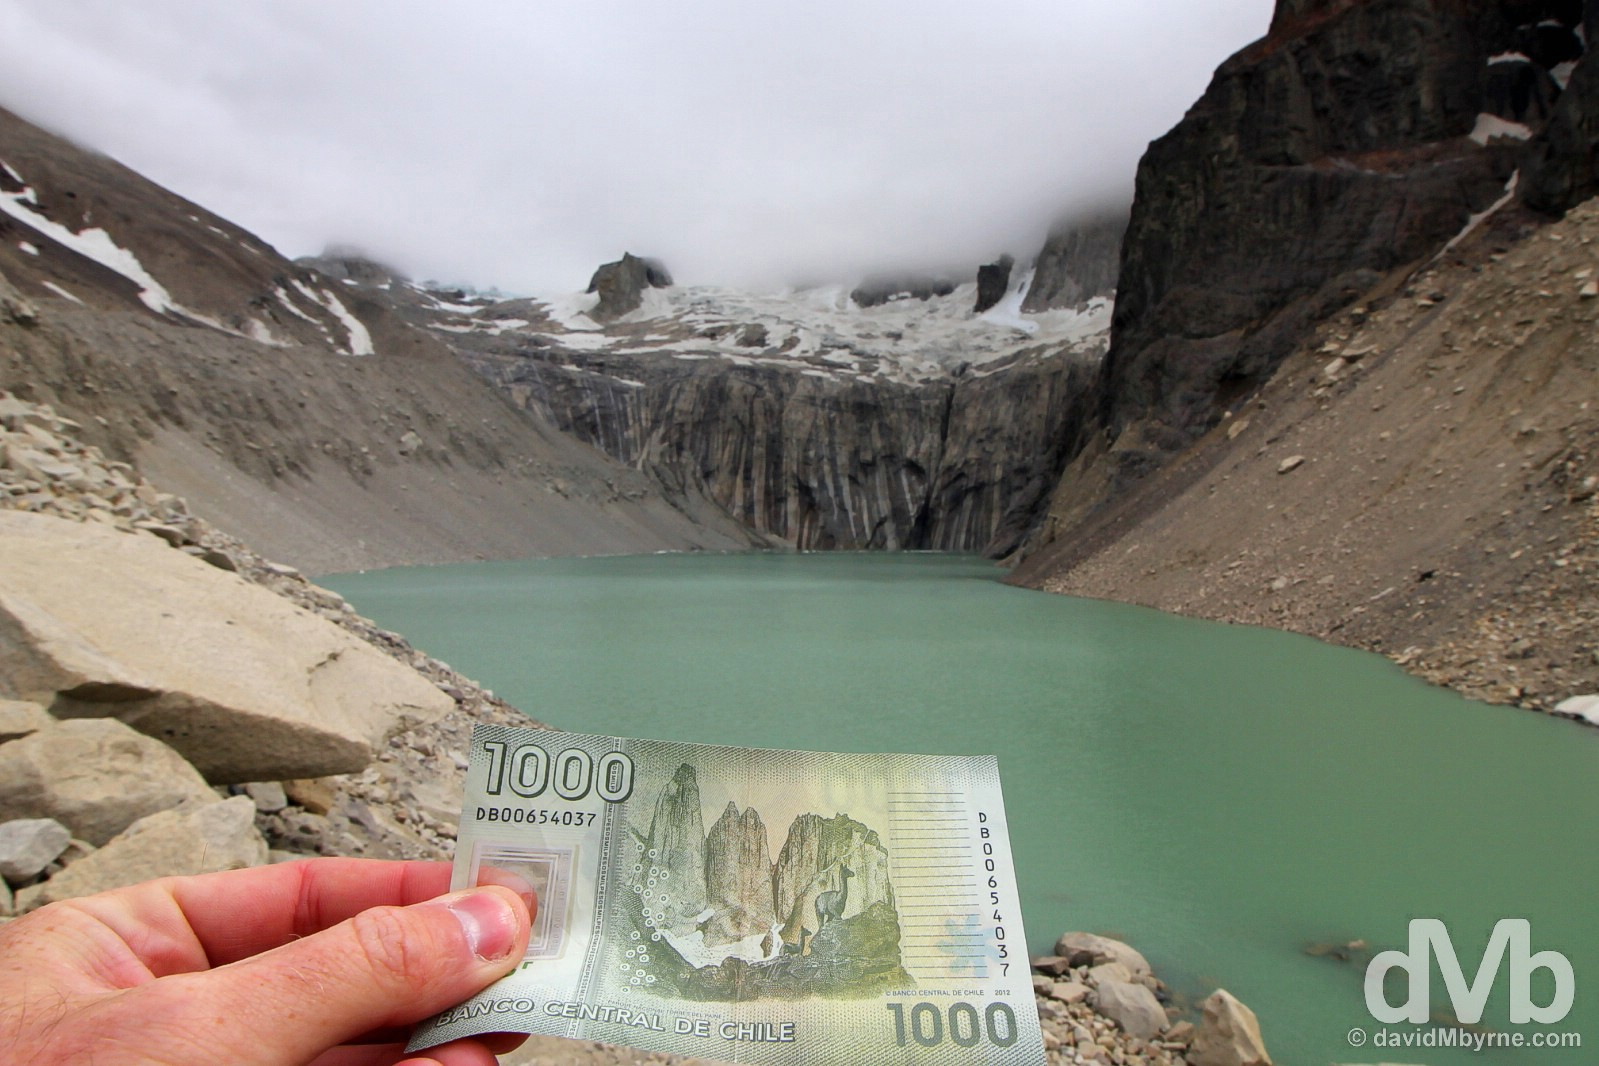 The missing pieces. The Torres del Paine peaks, shrouded by cloud on this day, as seen on the rear of the Chilean 1000 peso note on the edge of Laguna Torre in Parque Nacional Torres Del Paine, southern Patagonia, Chile. November 7, 2015.